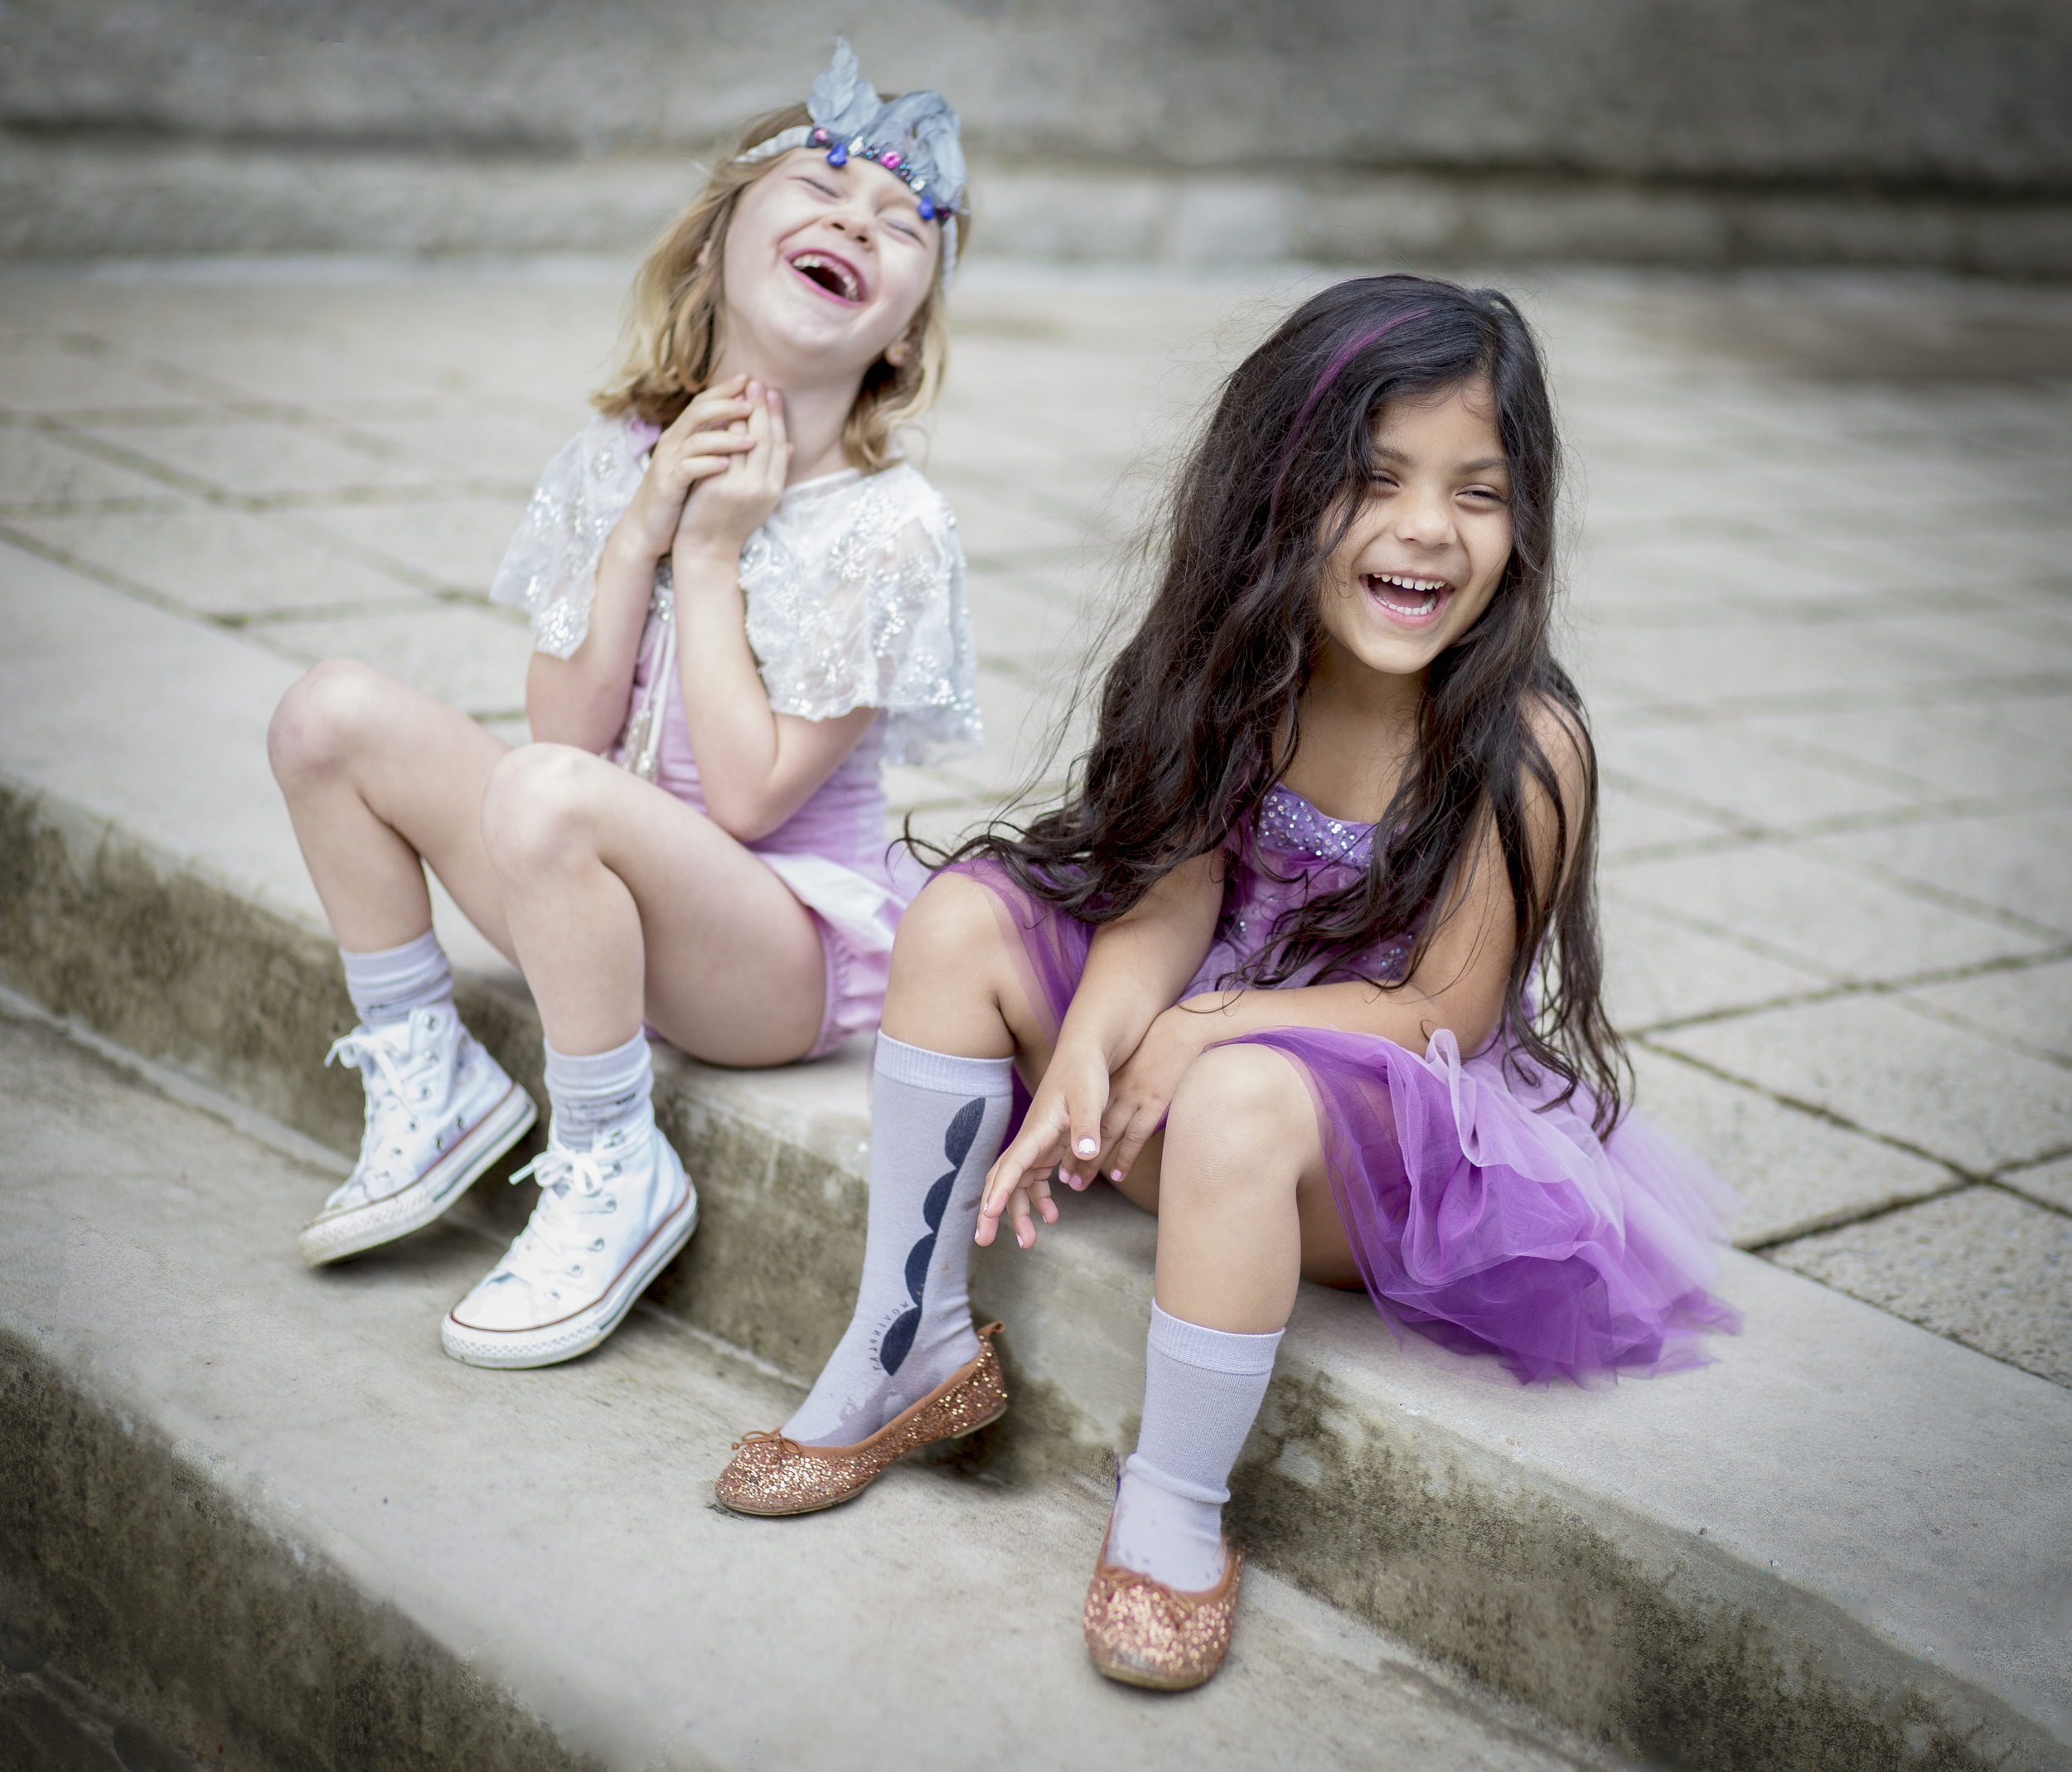 I love to see kids laugh